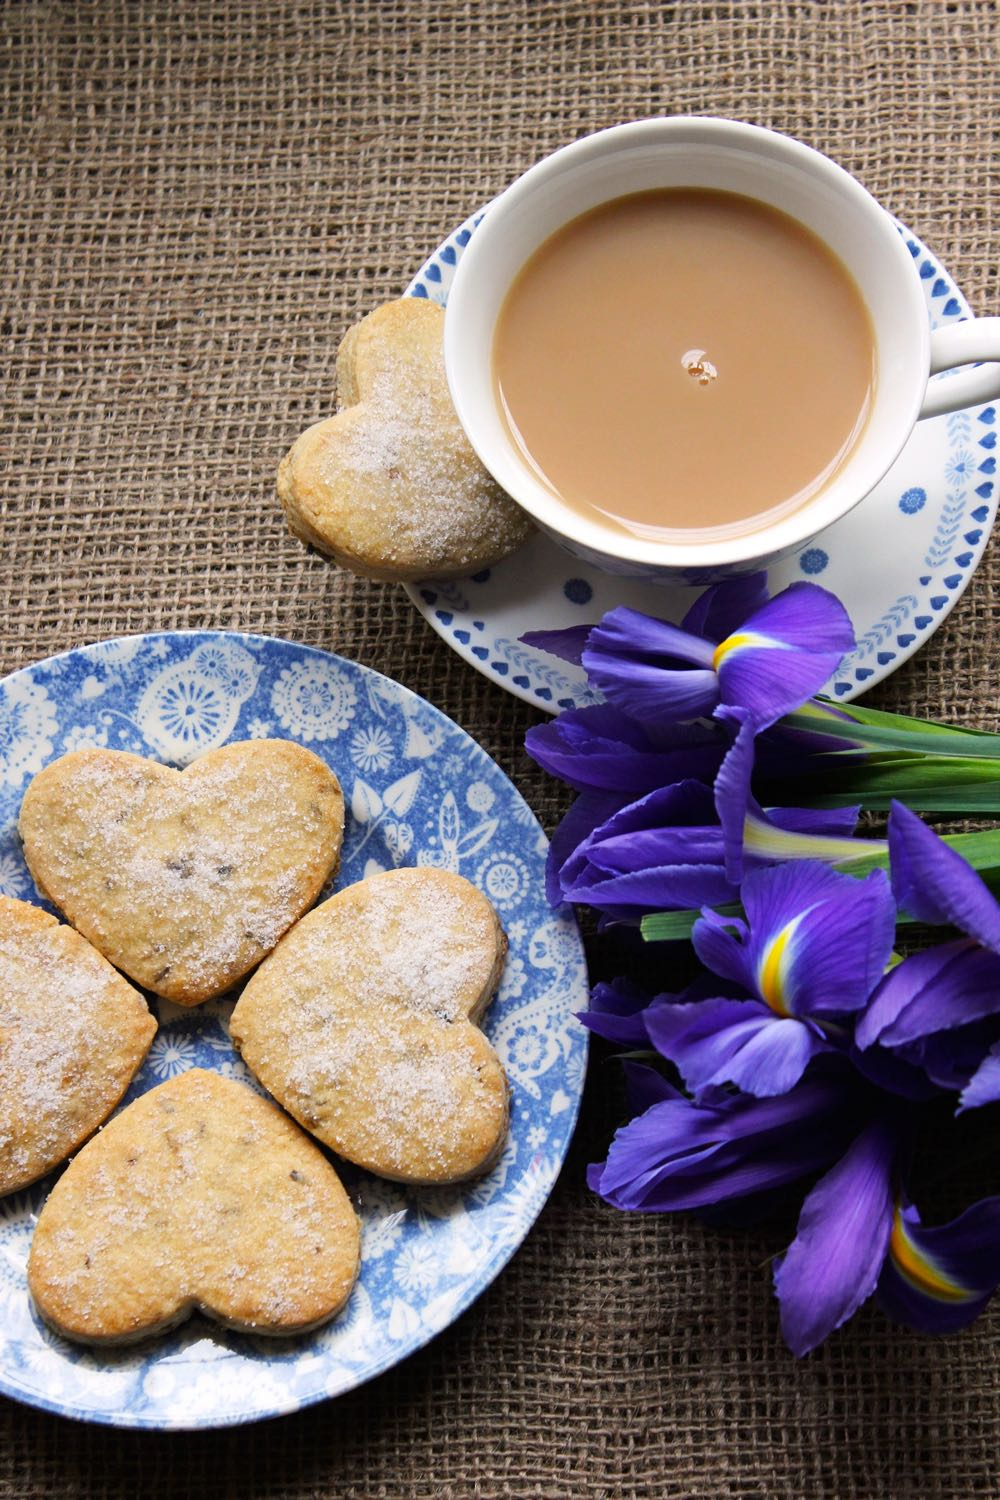 Lavender Biscuits - The smell of these cooking is amazing – the scent of the garden on a warm summer's evening wafting gently through the house and drawing people irresistibly to the kitchen, perfect!